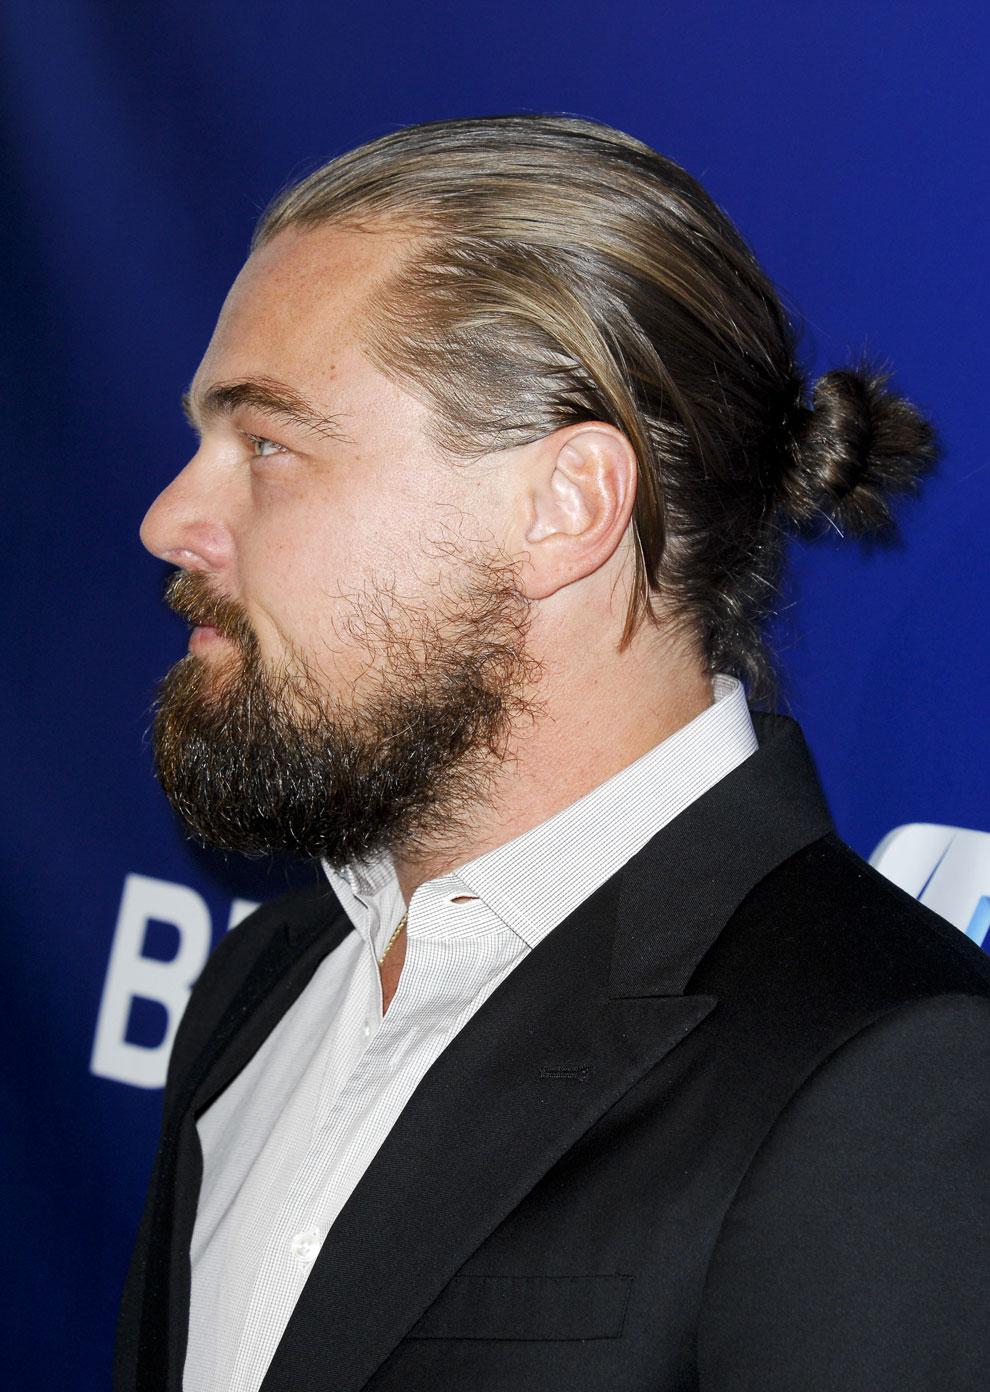 70 Best Man Bun Hairstyle And Top Knot Cuts How To Grow And Style Atoz Hairstyles